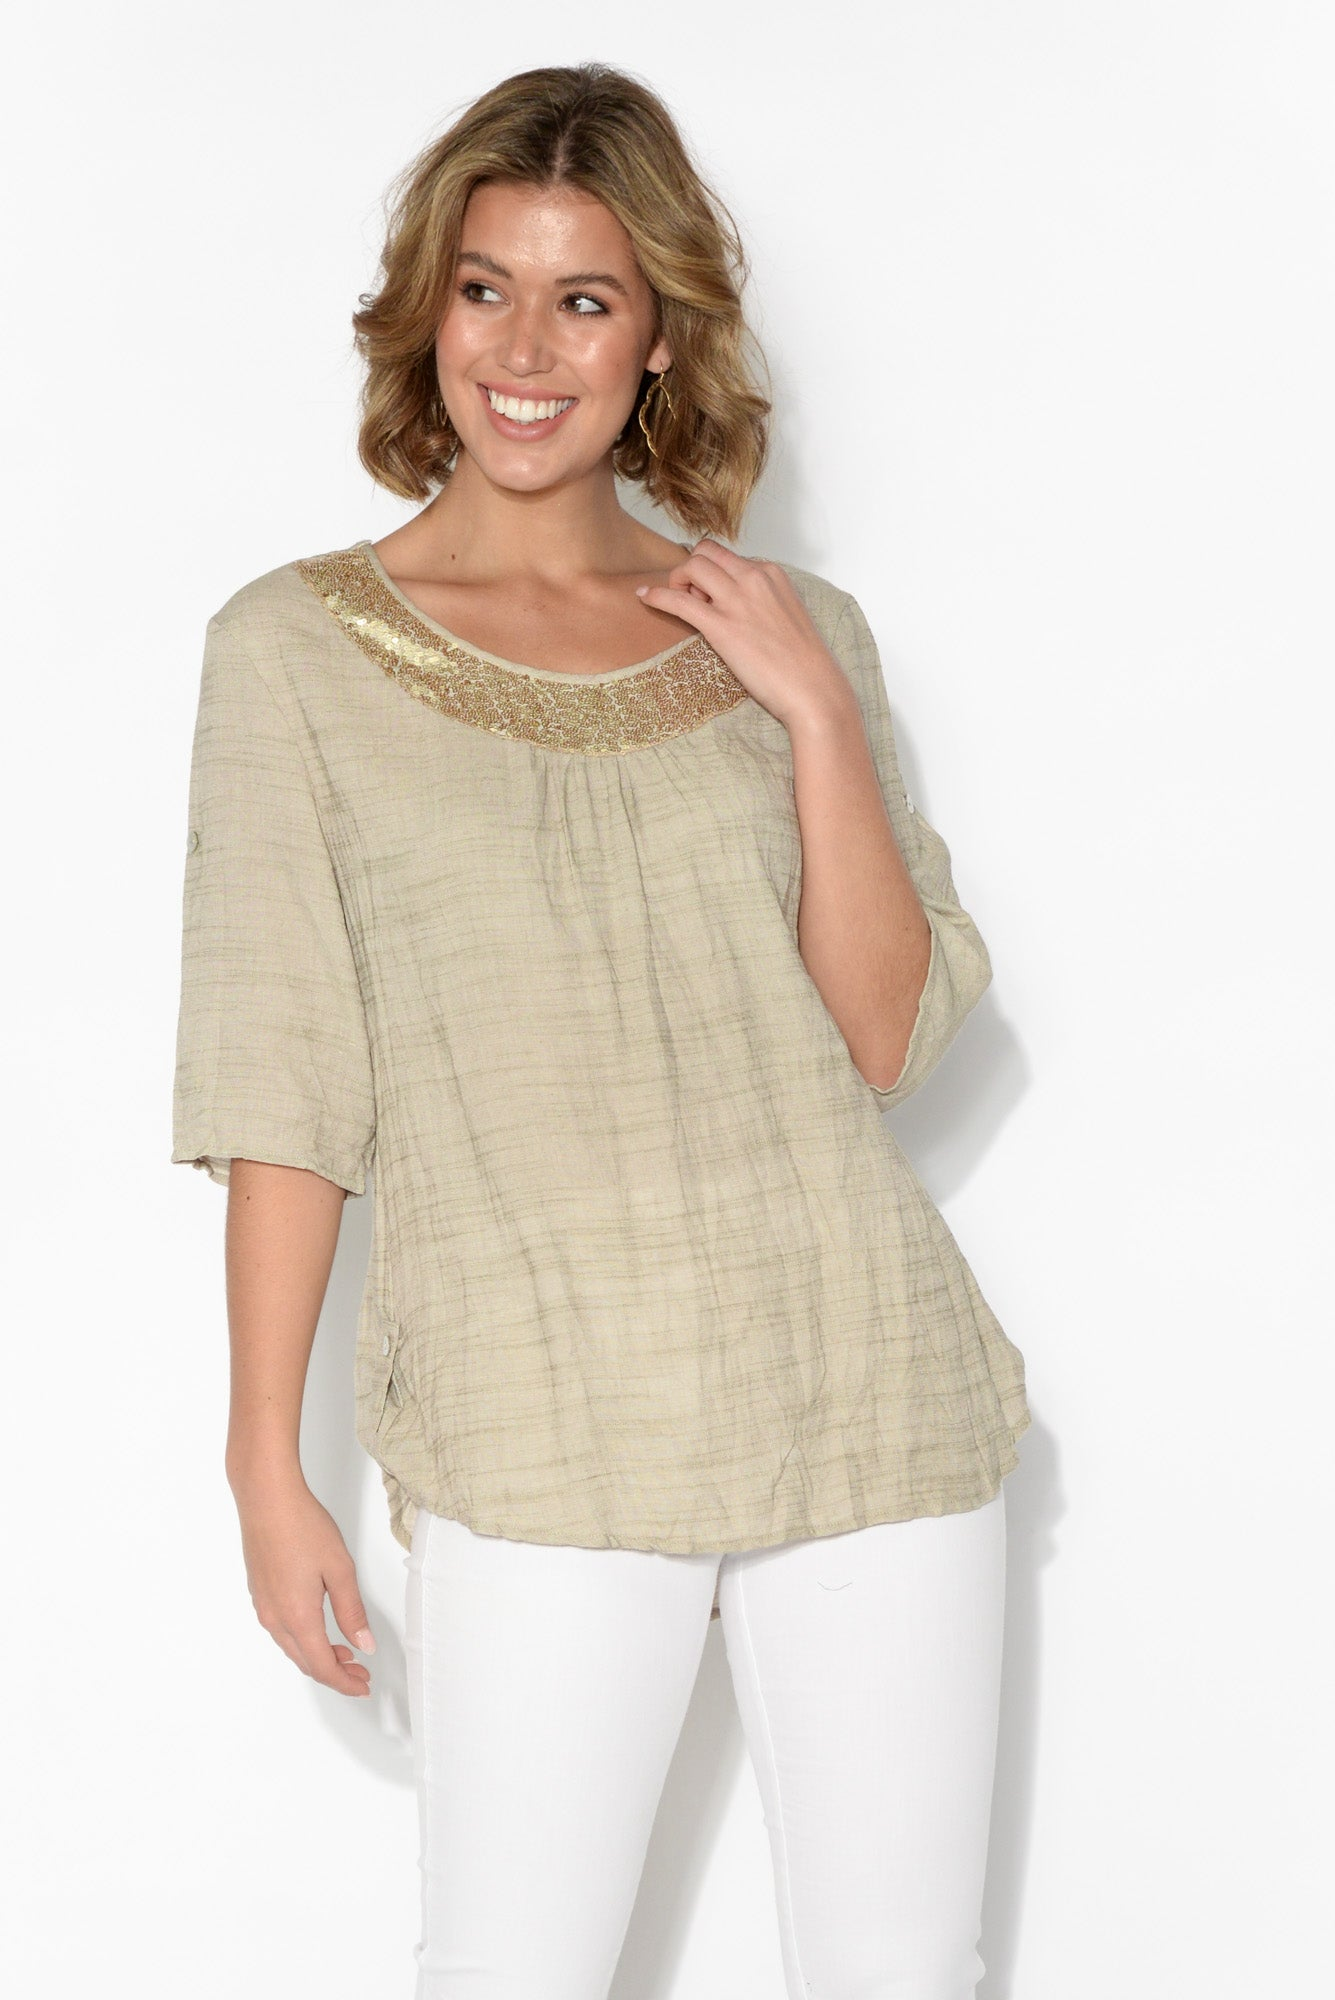 Eileen Natural Sequined Neckline Top